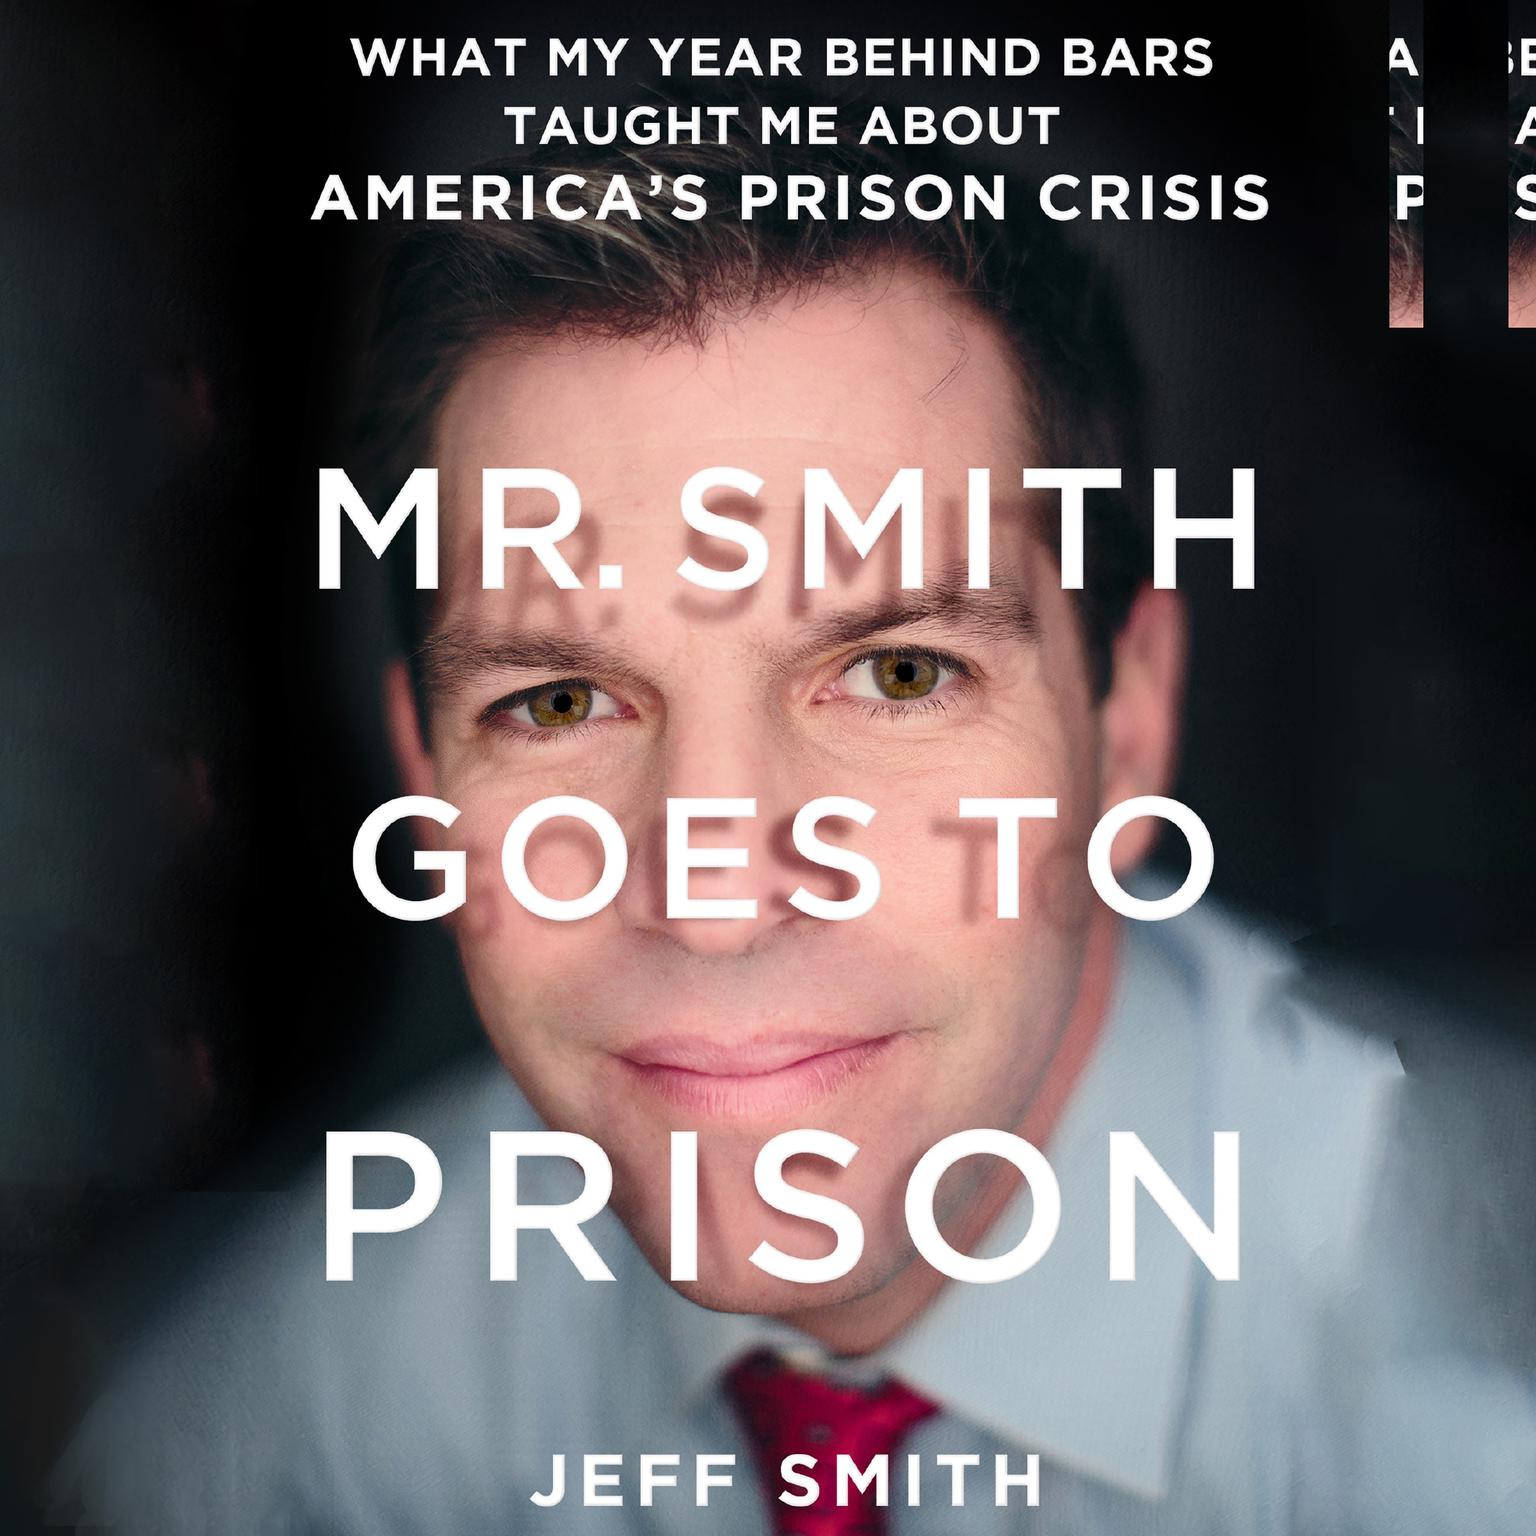 What My Year Behind Bars Taught Me About America's Prison Crisis - Jeff Smith